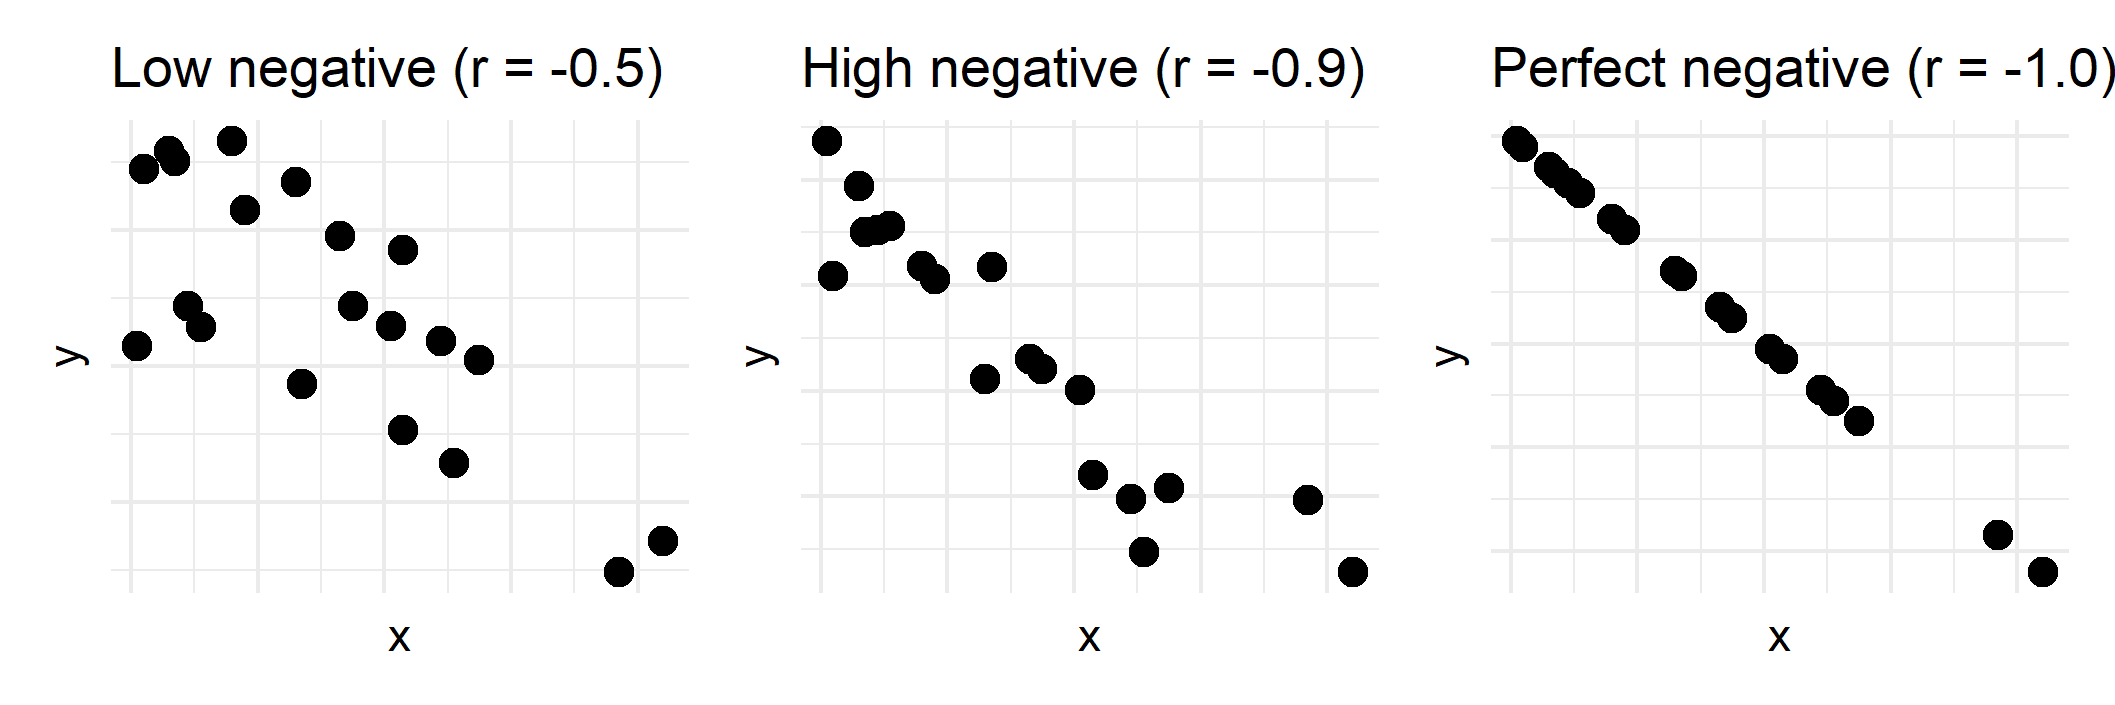 Examples of low, high, and perfect negative correlations between x and y